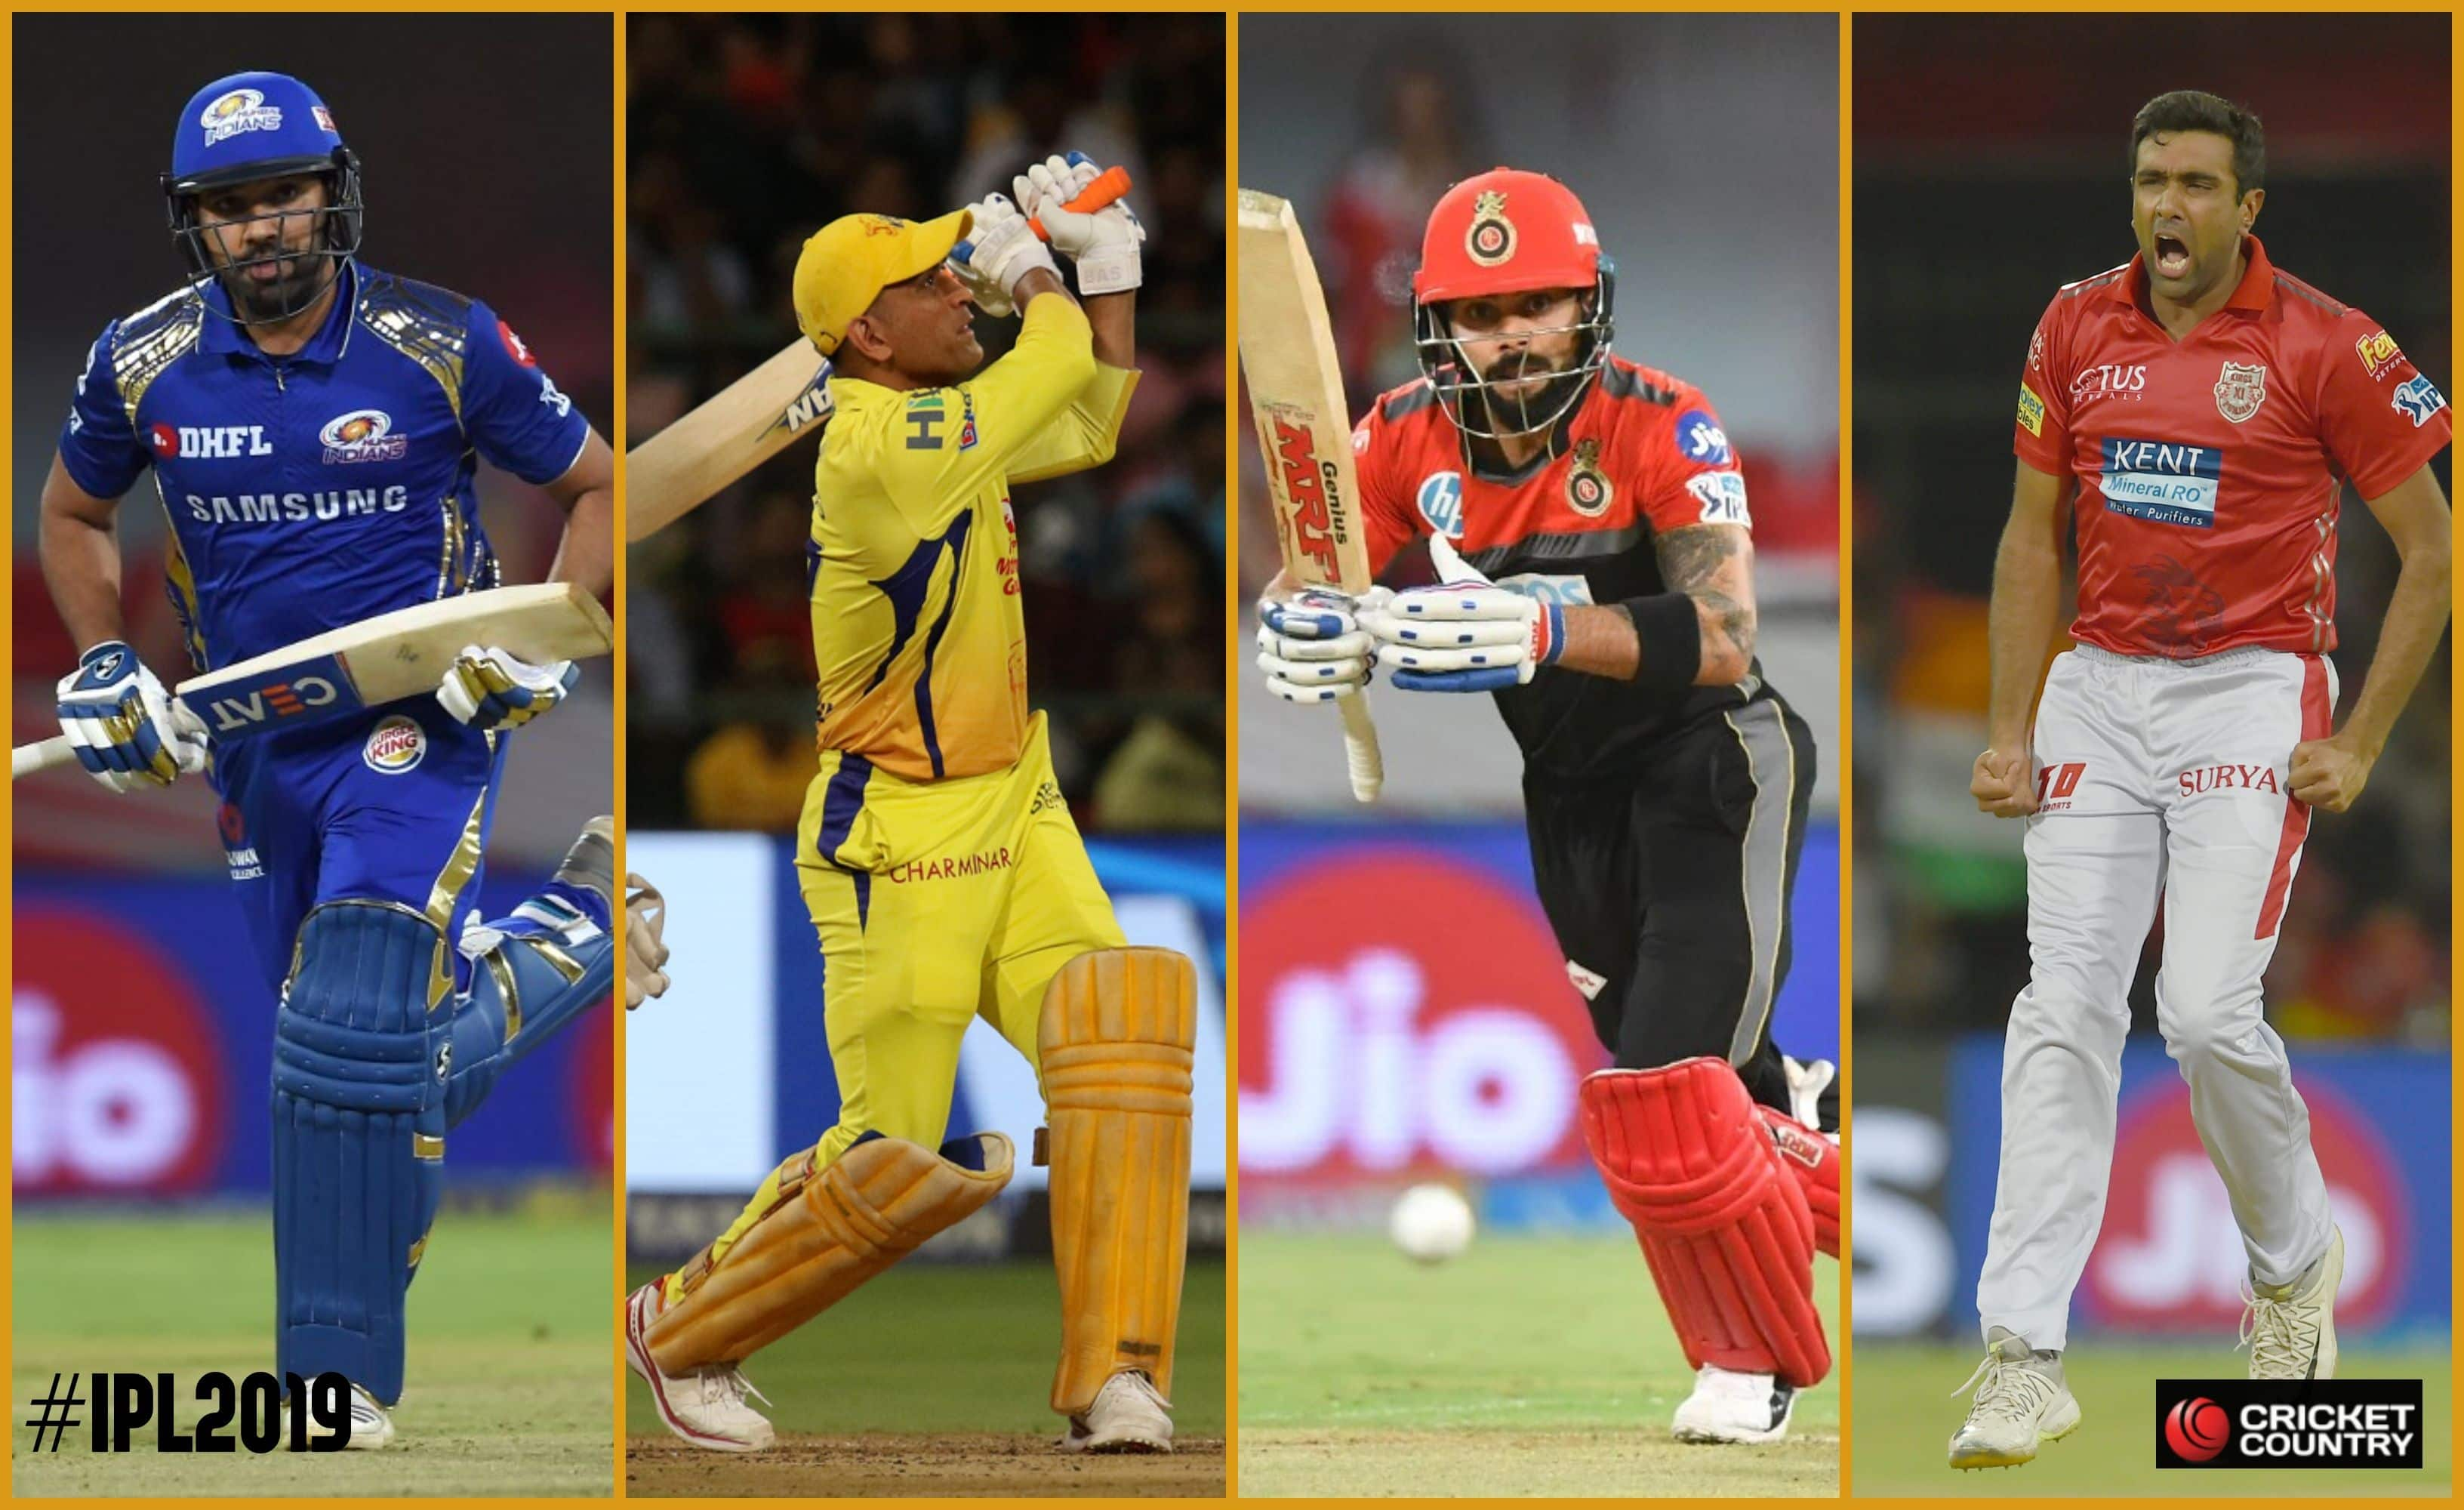 IPL 2019: World Cup shadow looms large as player management dominates